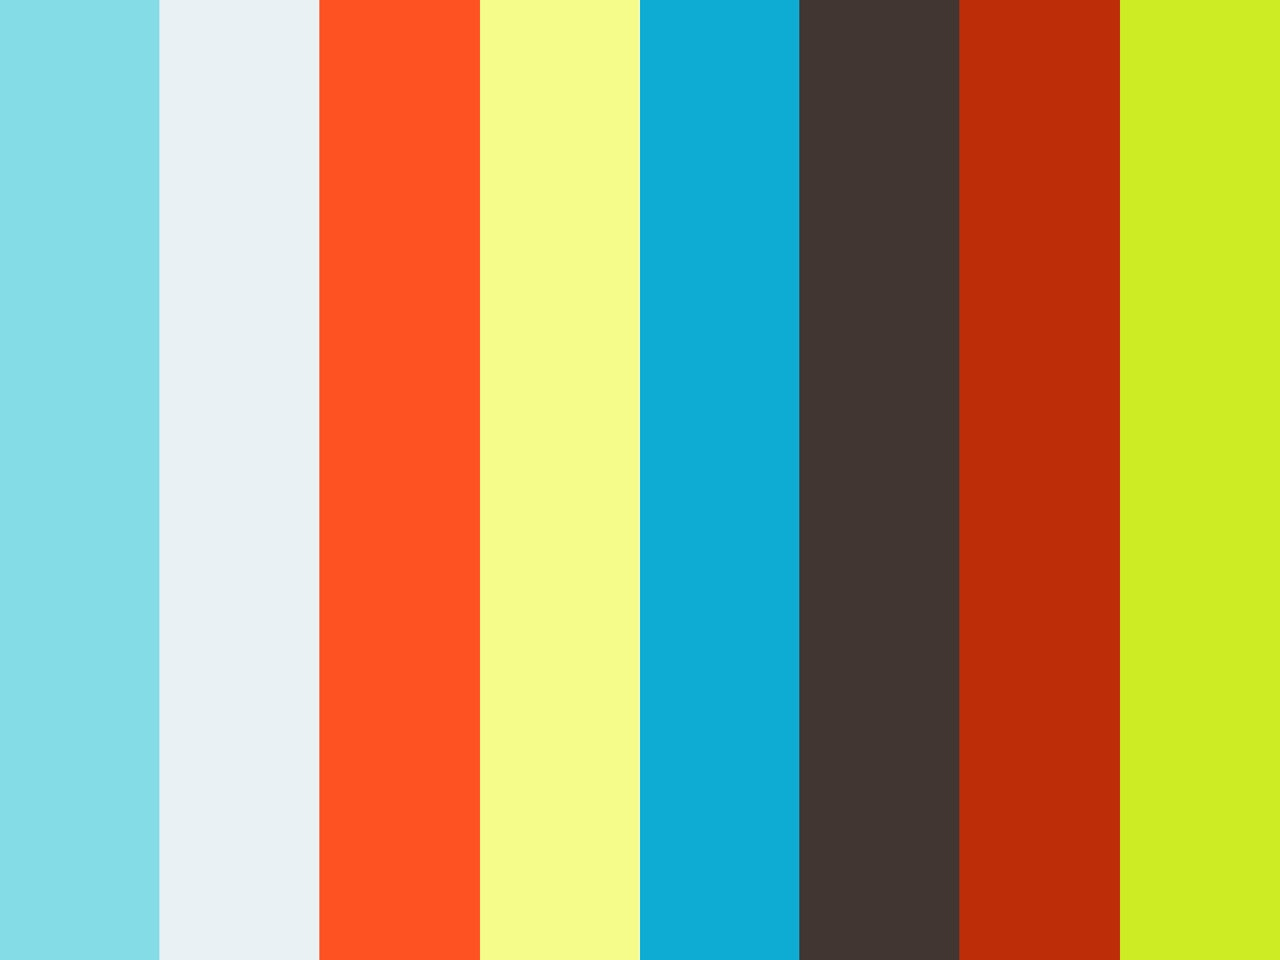 Helene N. Andreassen and Torstein Låg: Because you're worth it: how to inspire academic integrity and critical thinking...